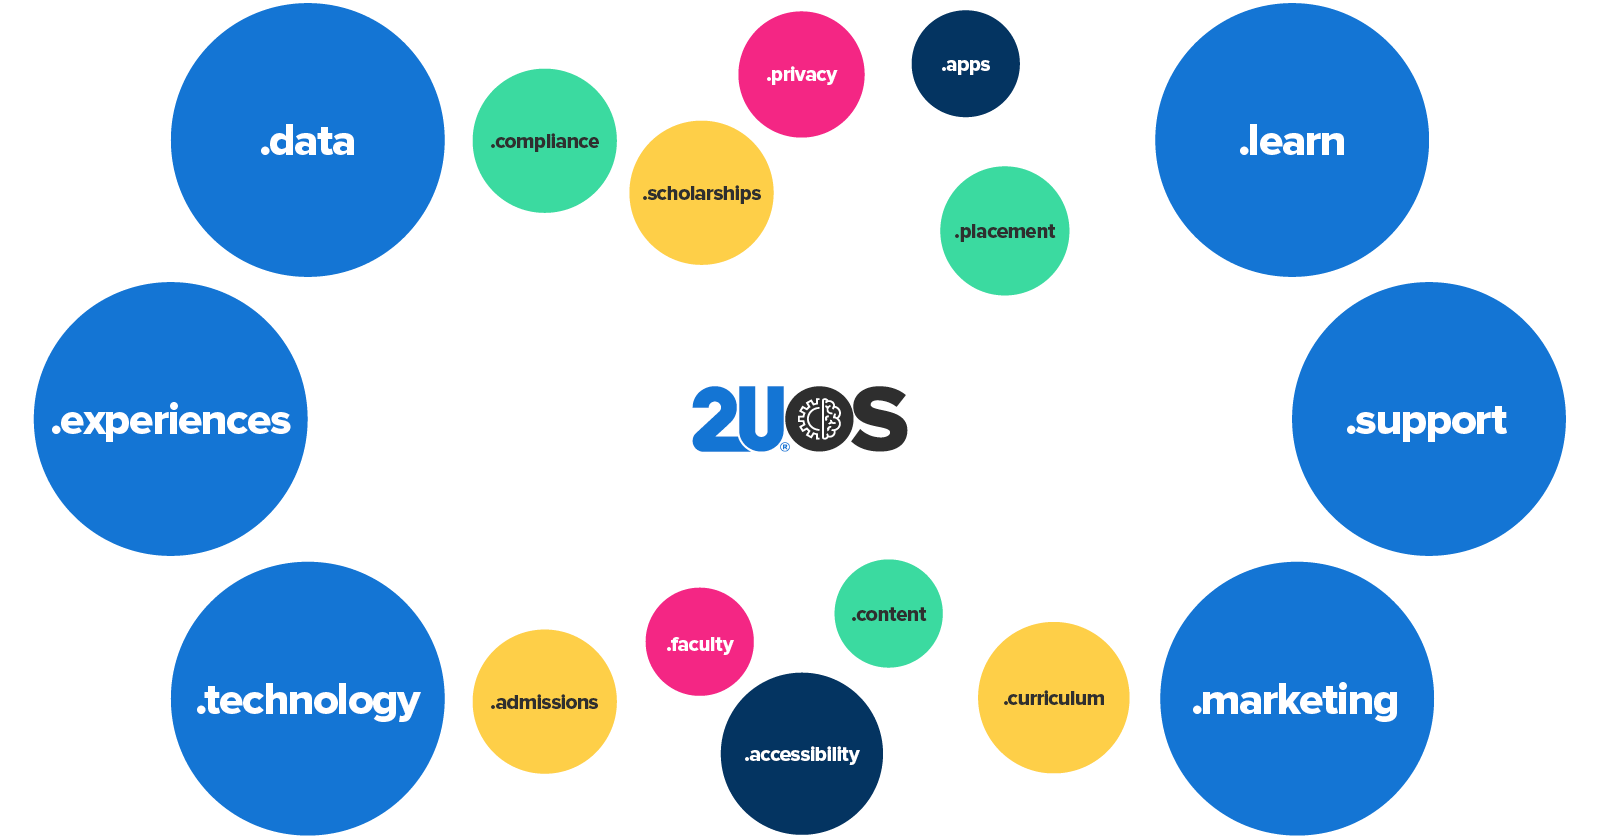 Network of benefits from 2UOS